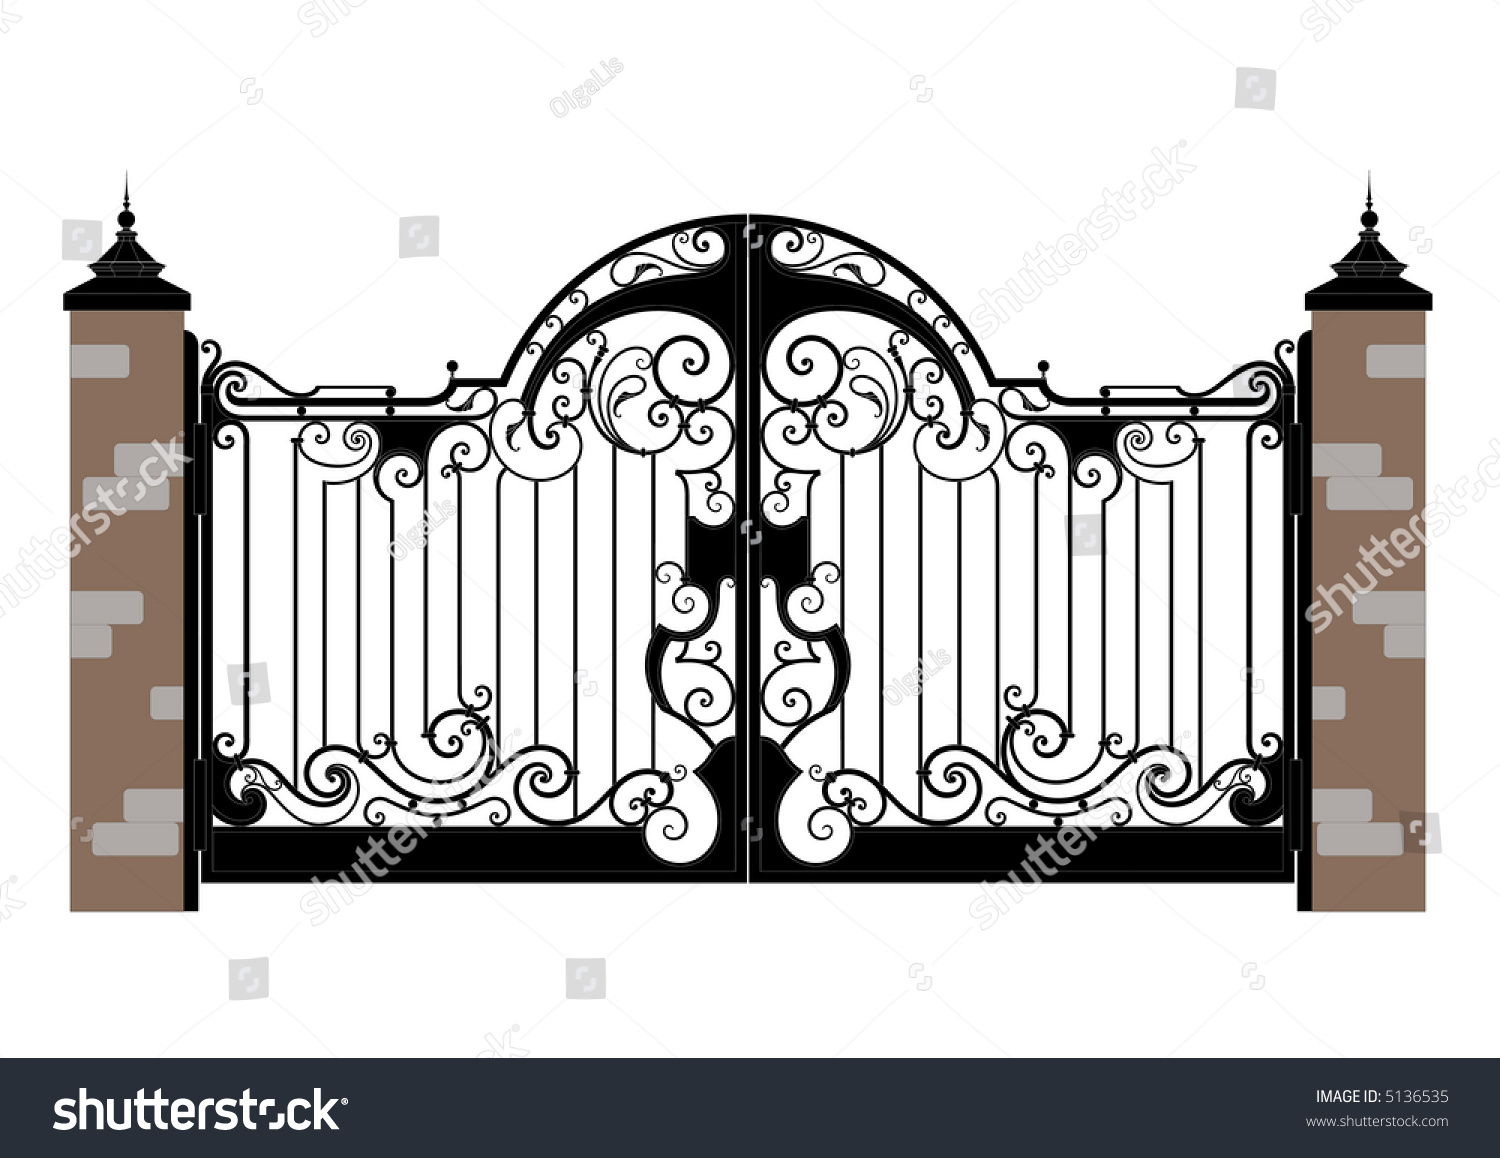 Ornate smart forged iron gate accurate drawing sketch of